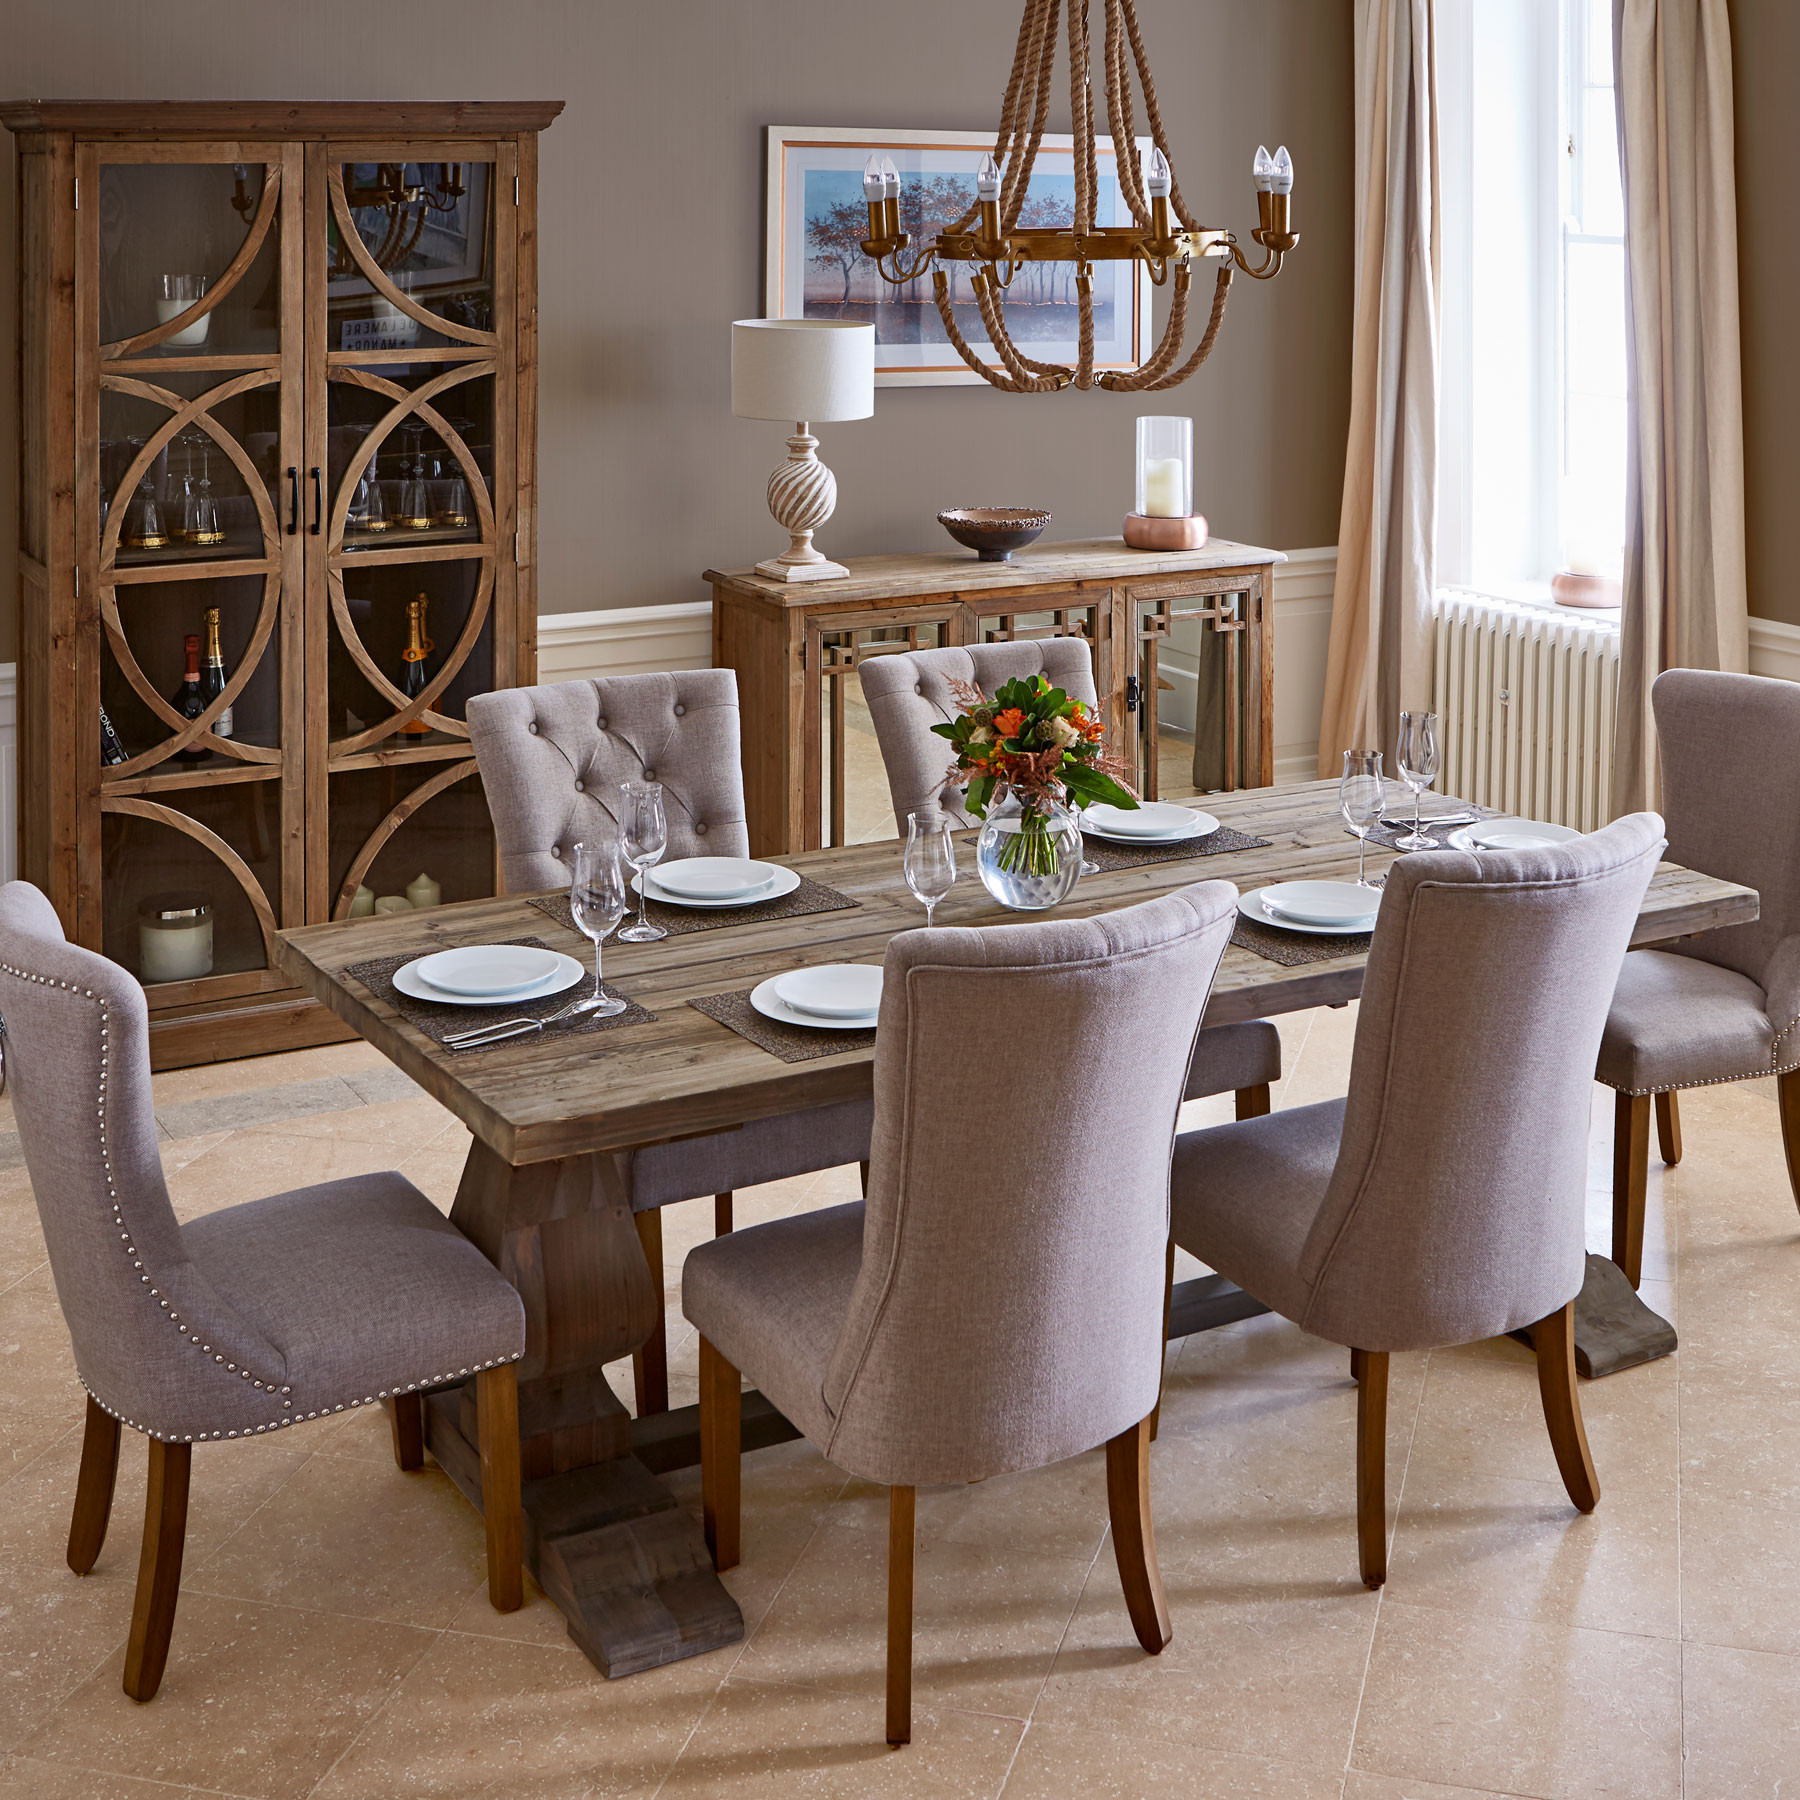 dining tables and chairs photo - 7